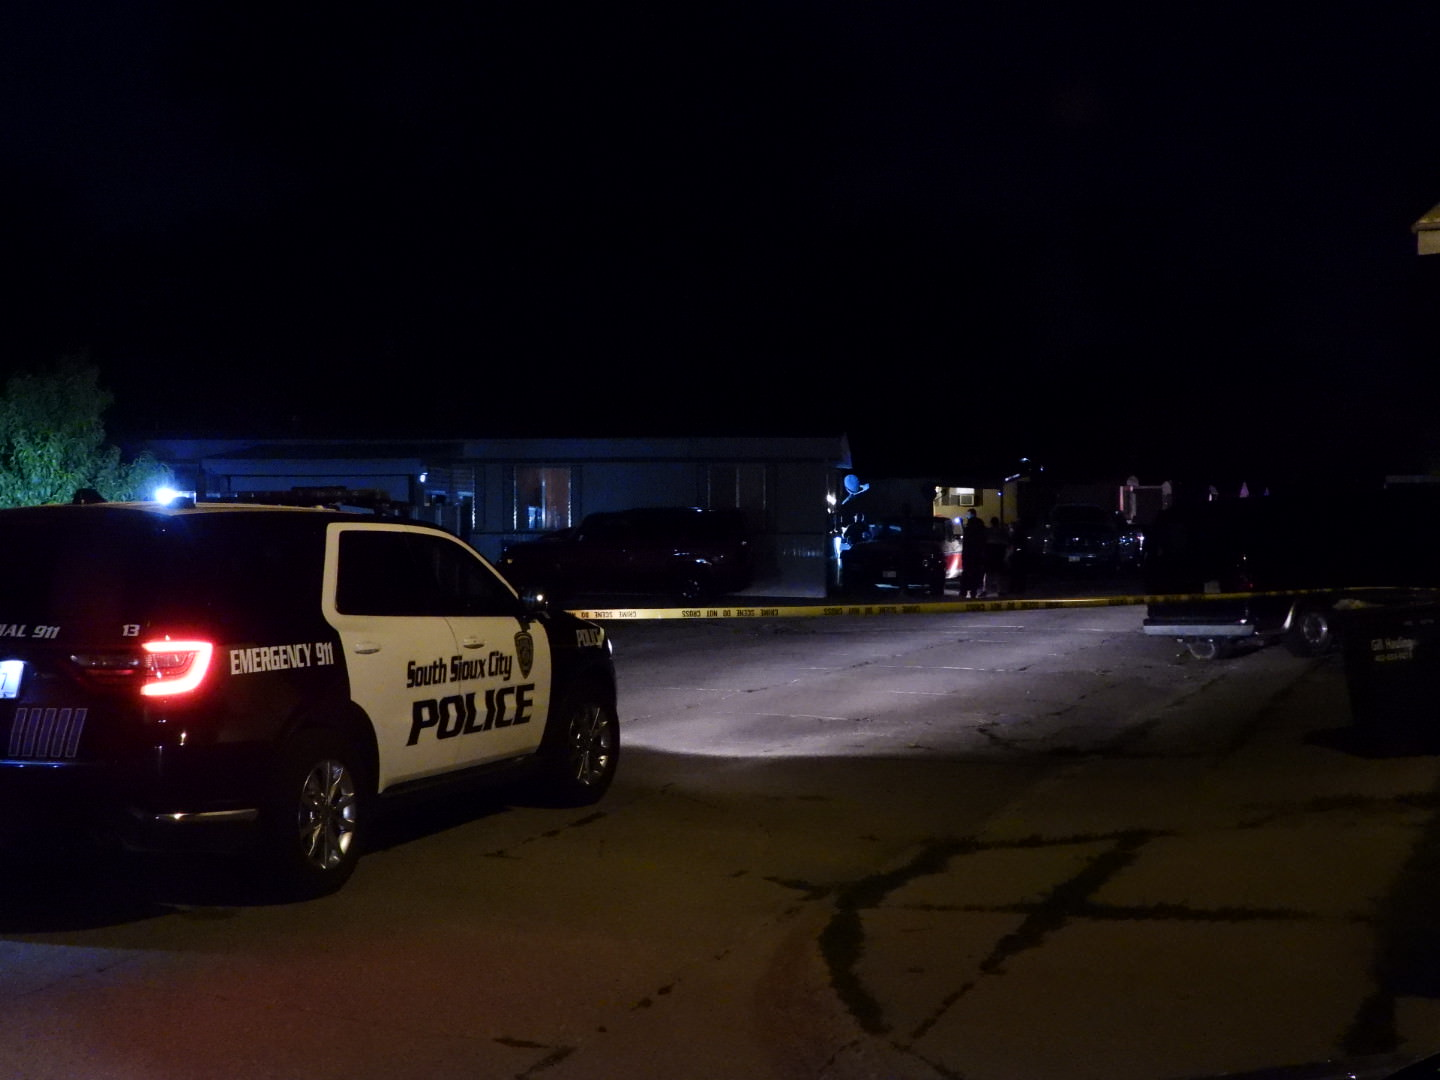 Nobody injuried in South Sioux City Wednesday evening after shots were fired at Parkview